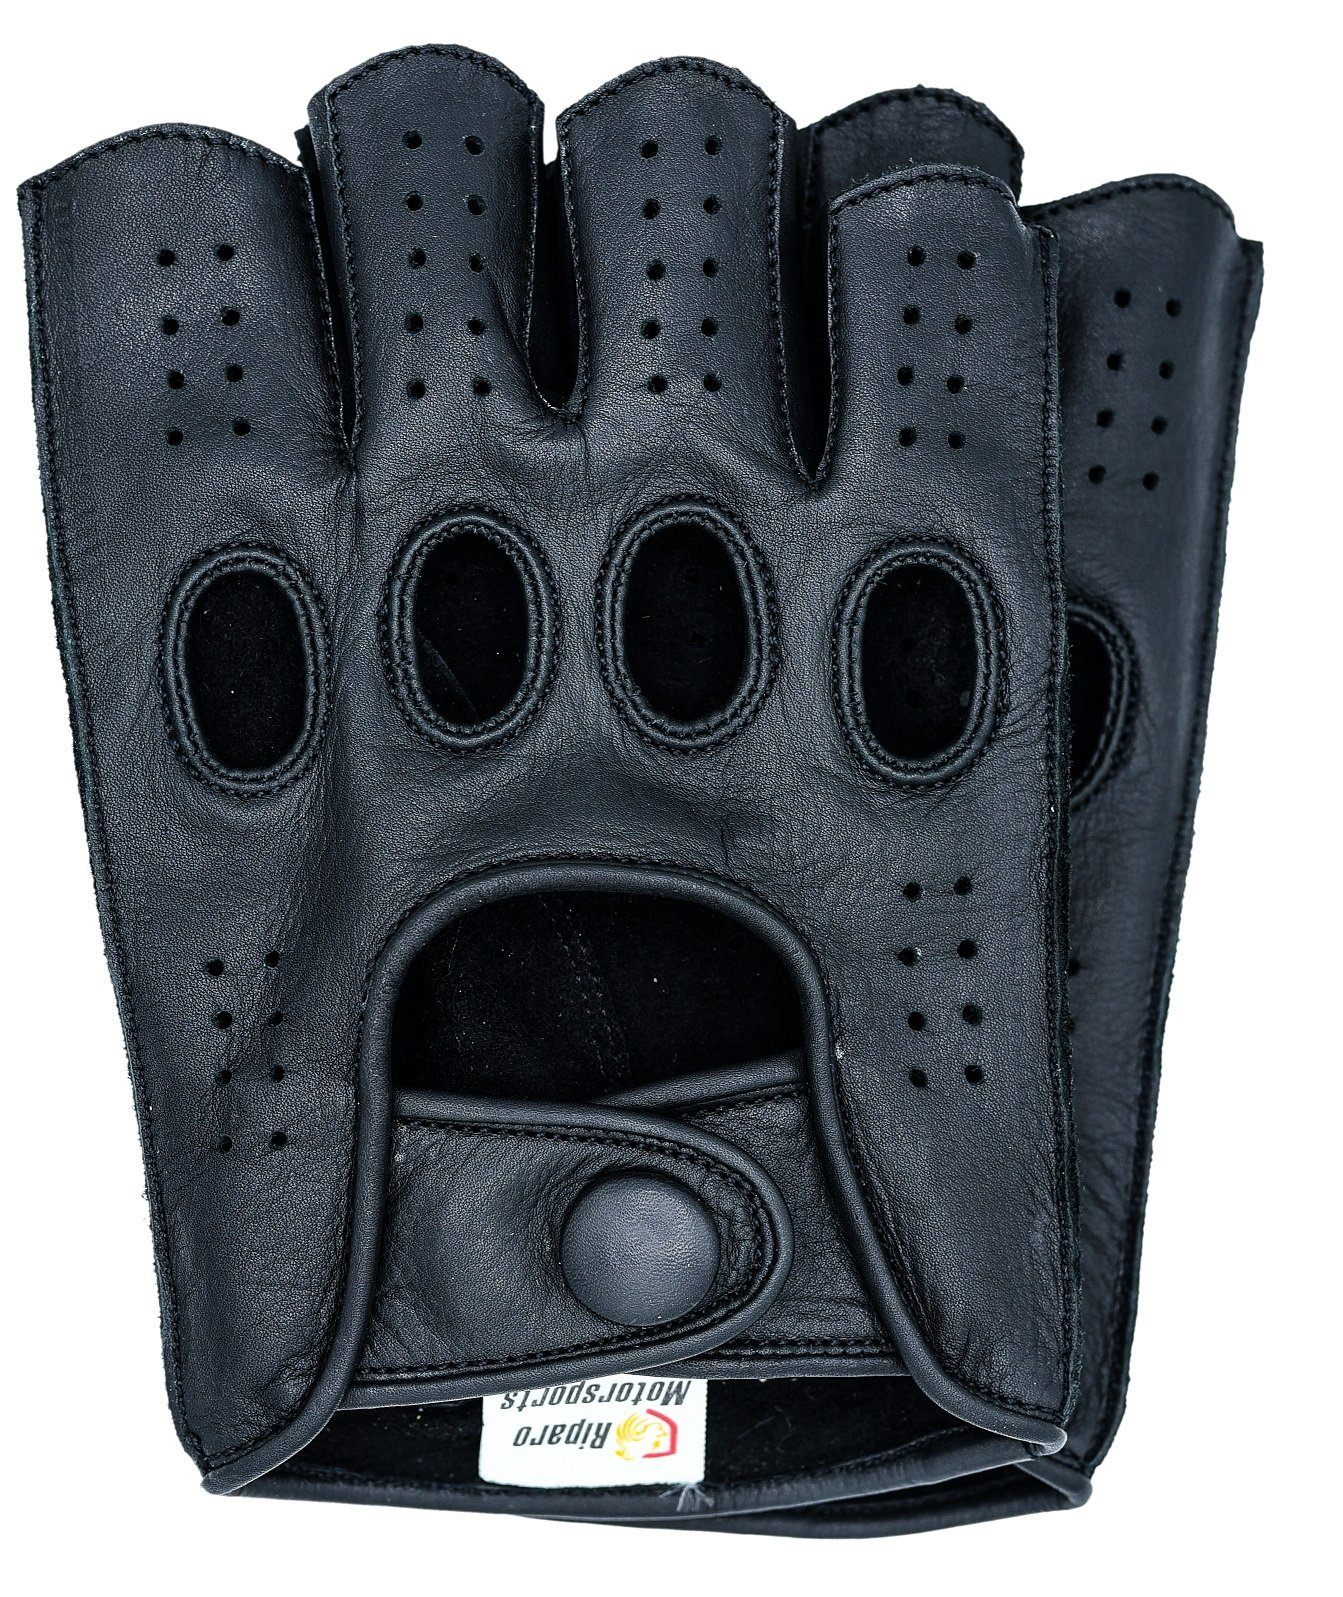 Riparo Women Genuine Leather Reverse Stitched Half-Finger Driving Motorcycle Gloves (7.5, Black)